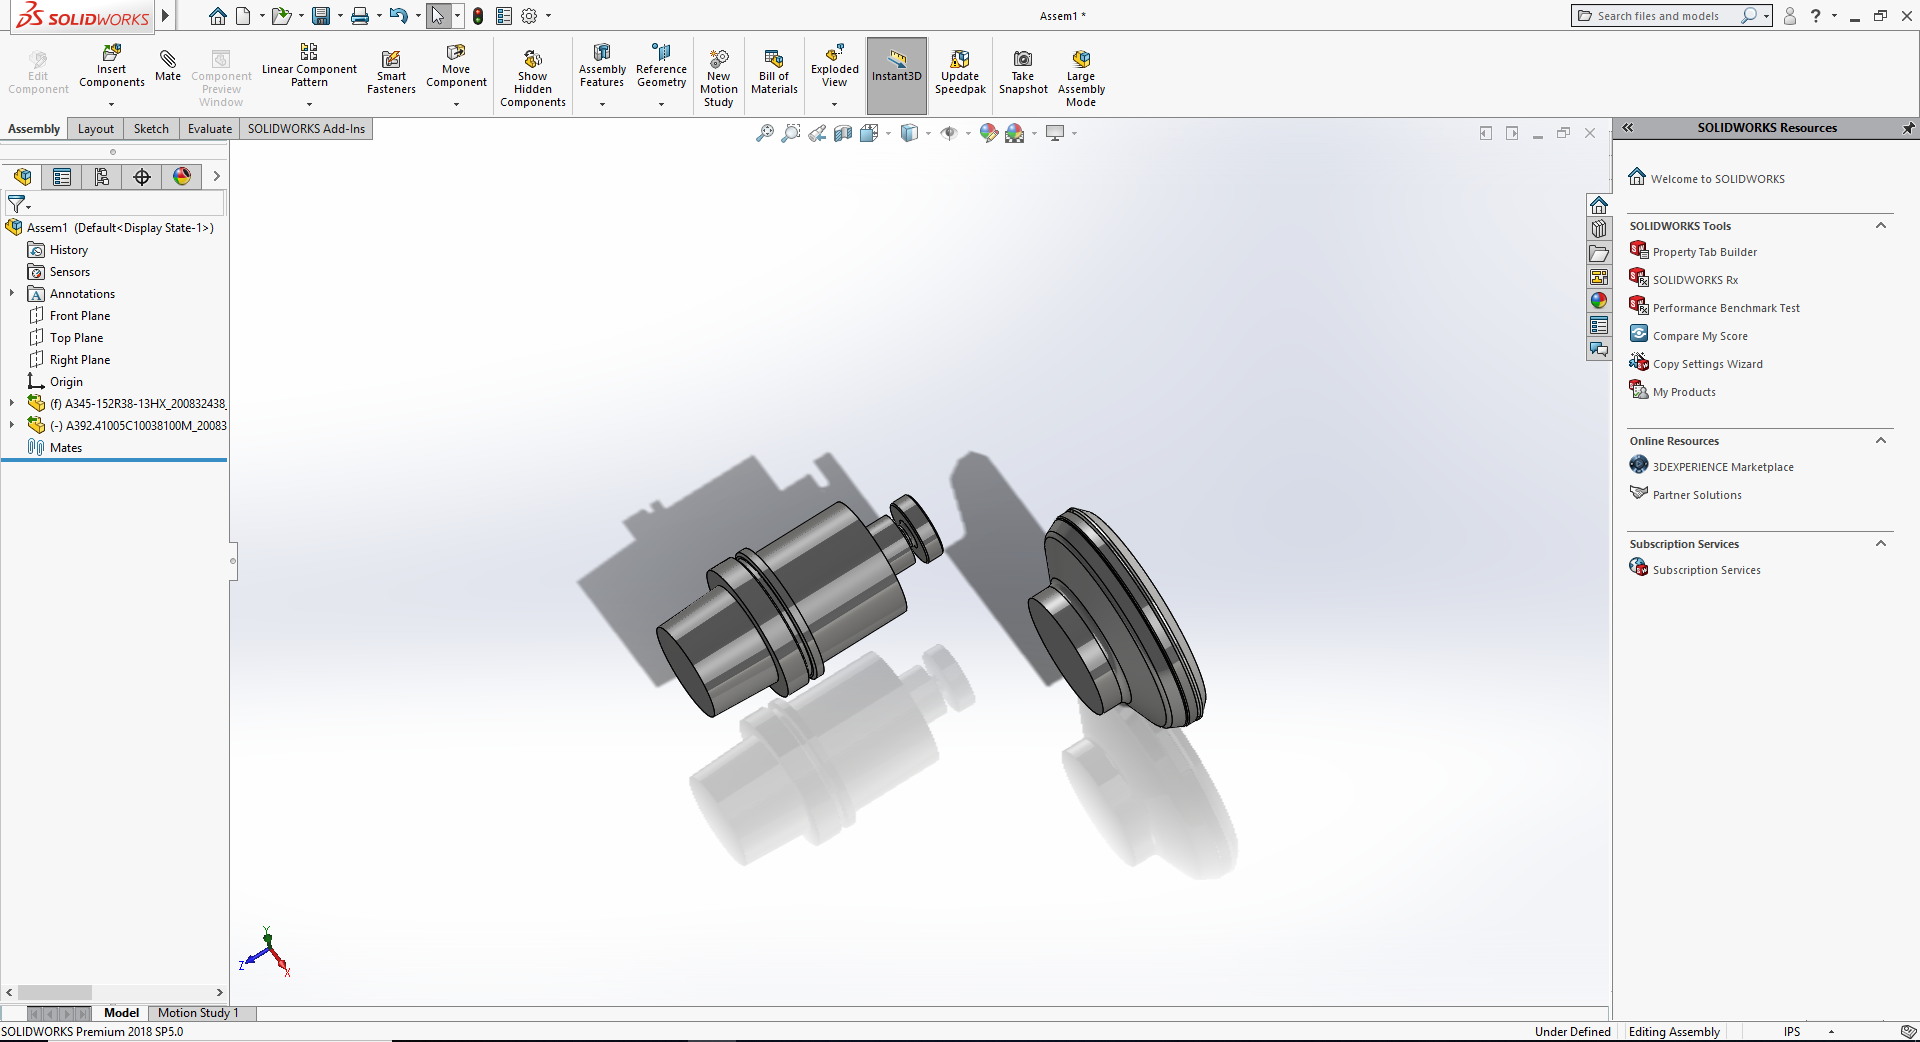 Build Tool Assembly - SolidWorks